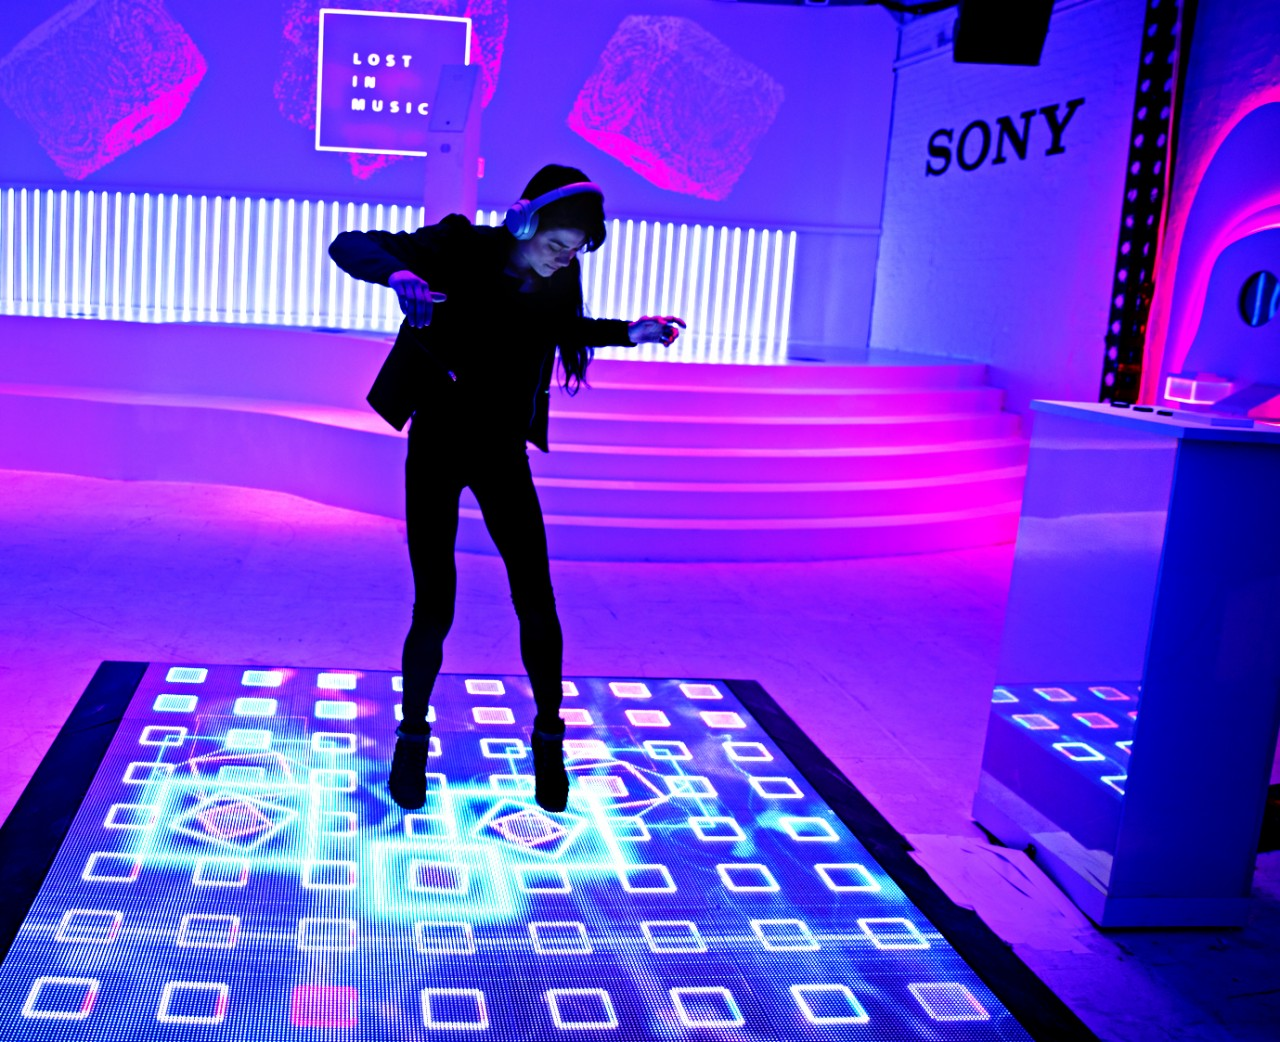 How Sony is uniting its brand by fusing tech with music in immersive experiences